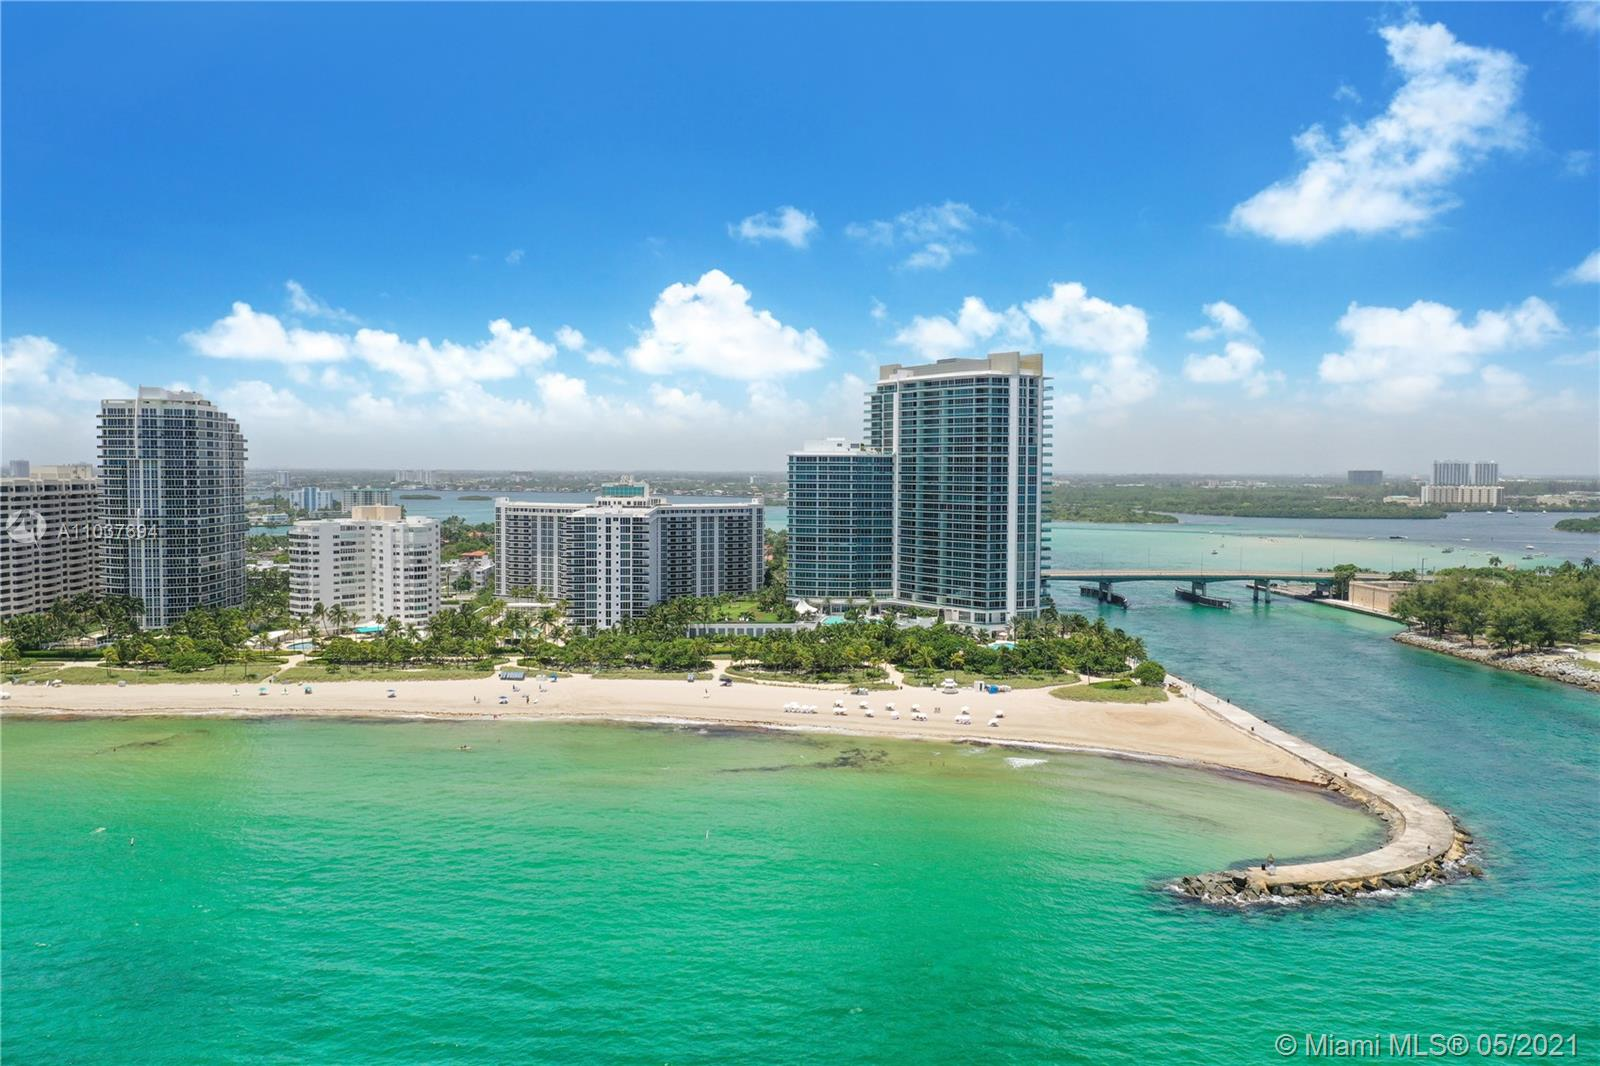 Located in the prestigious Ritz Carlton in Bal Harbour, this stunning 2 bedroom + den/office condo is the definition of luxury ocean front living. This designer finished residence boasts unobstructed views of the Atlantic Ocean, exquisite stone flooring though out, gourmet kitchen and a spacious master bathroom with a stand alone jacuzzi tub. Walk on the Beach or take a stroll down the street to the world famous Bal Harbour Shops. Enjoy the luxurious amenities of the Ritz Carlton Hotel, with the privacy of the Ritz Carlton Residences. Residents enjoy 5-star amenities including beautifully manicured gardens, 2 restaurants, beach service, juice bar by the pool, club room, movie theater and much more